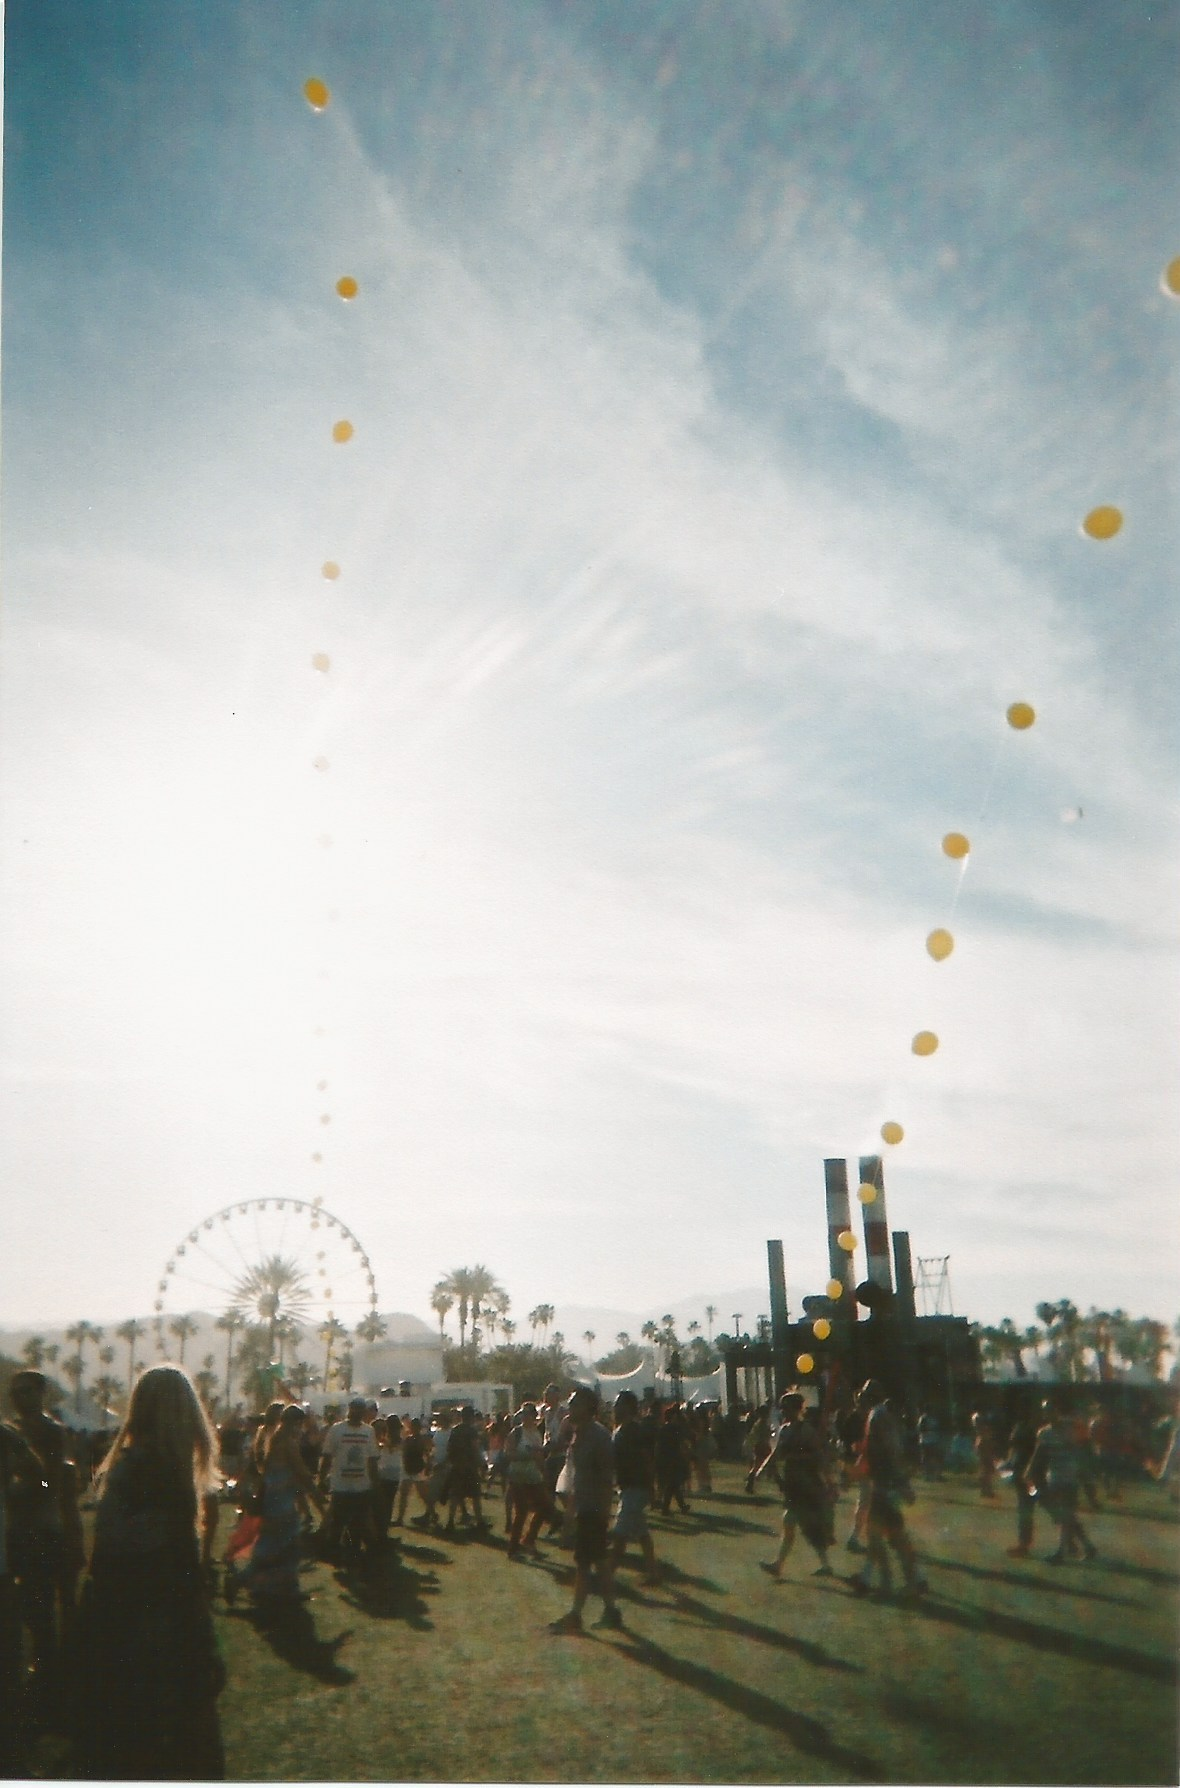 c0urtneys:   Coachella 2013, Weekend 1  dope